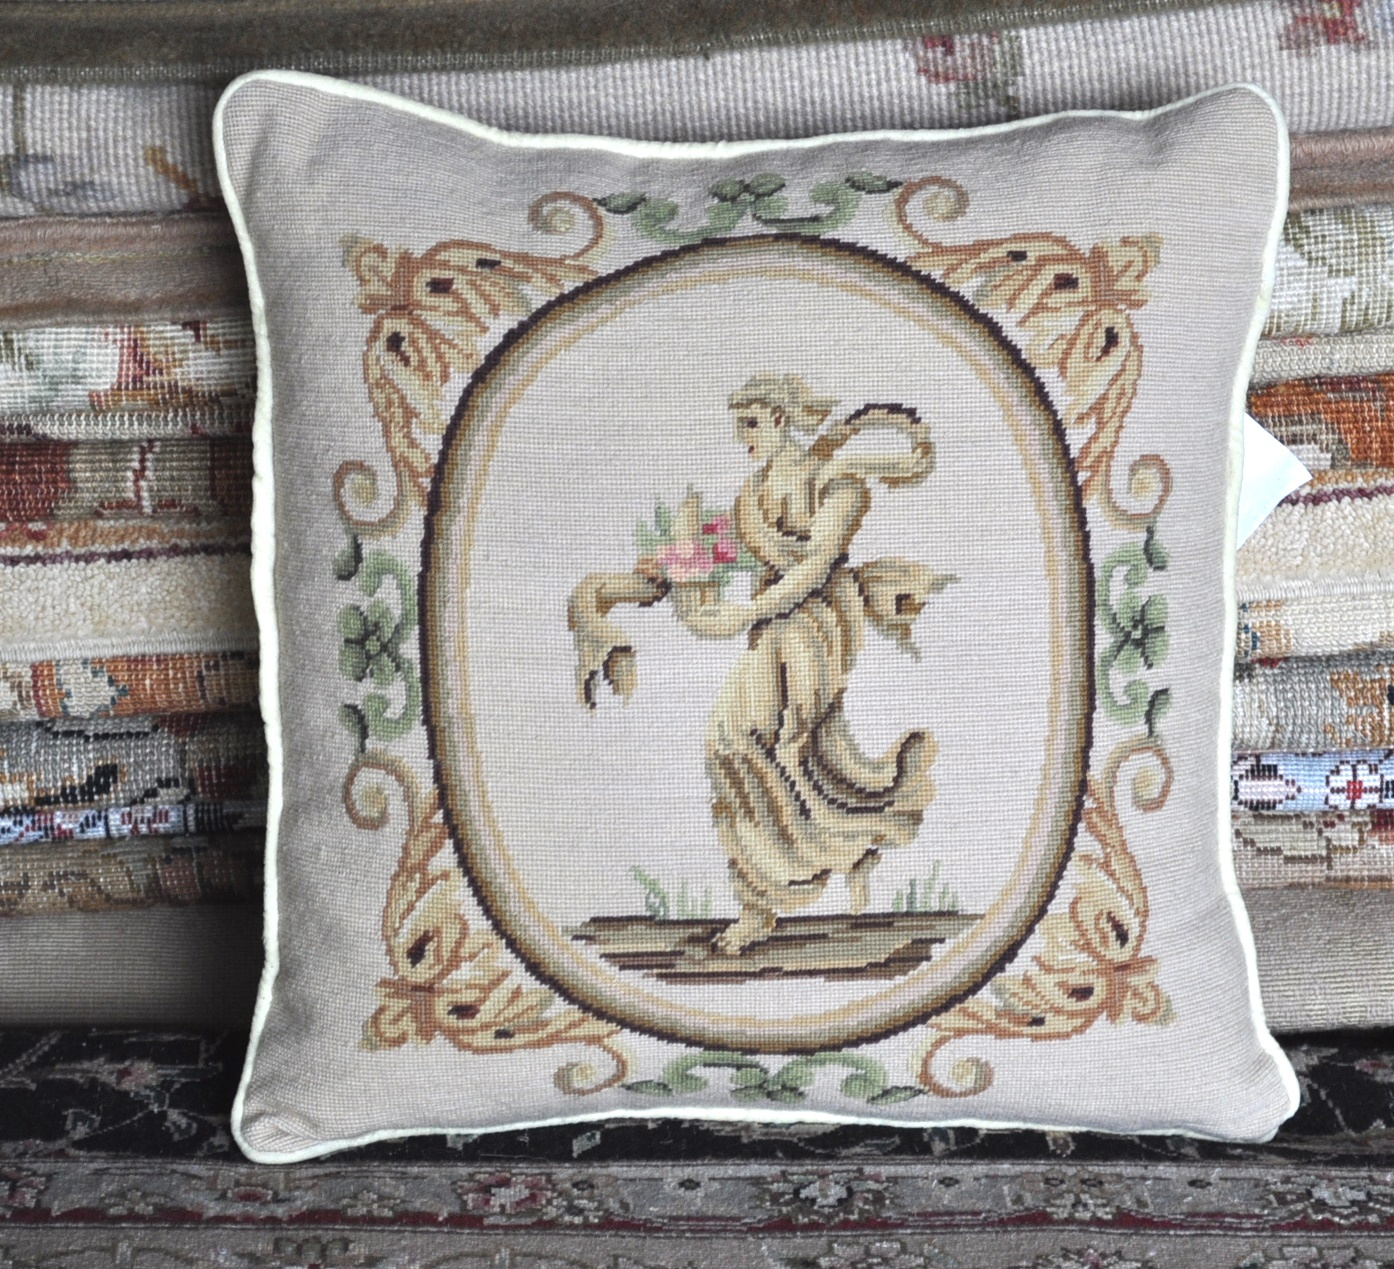 16 x 16 Handmade Wool Needlepoint Petitpoint Angel Cushion Cover Pillow Case 12980896